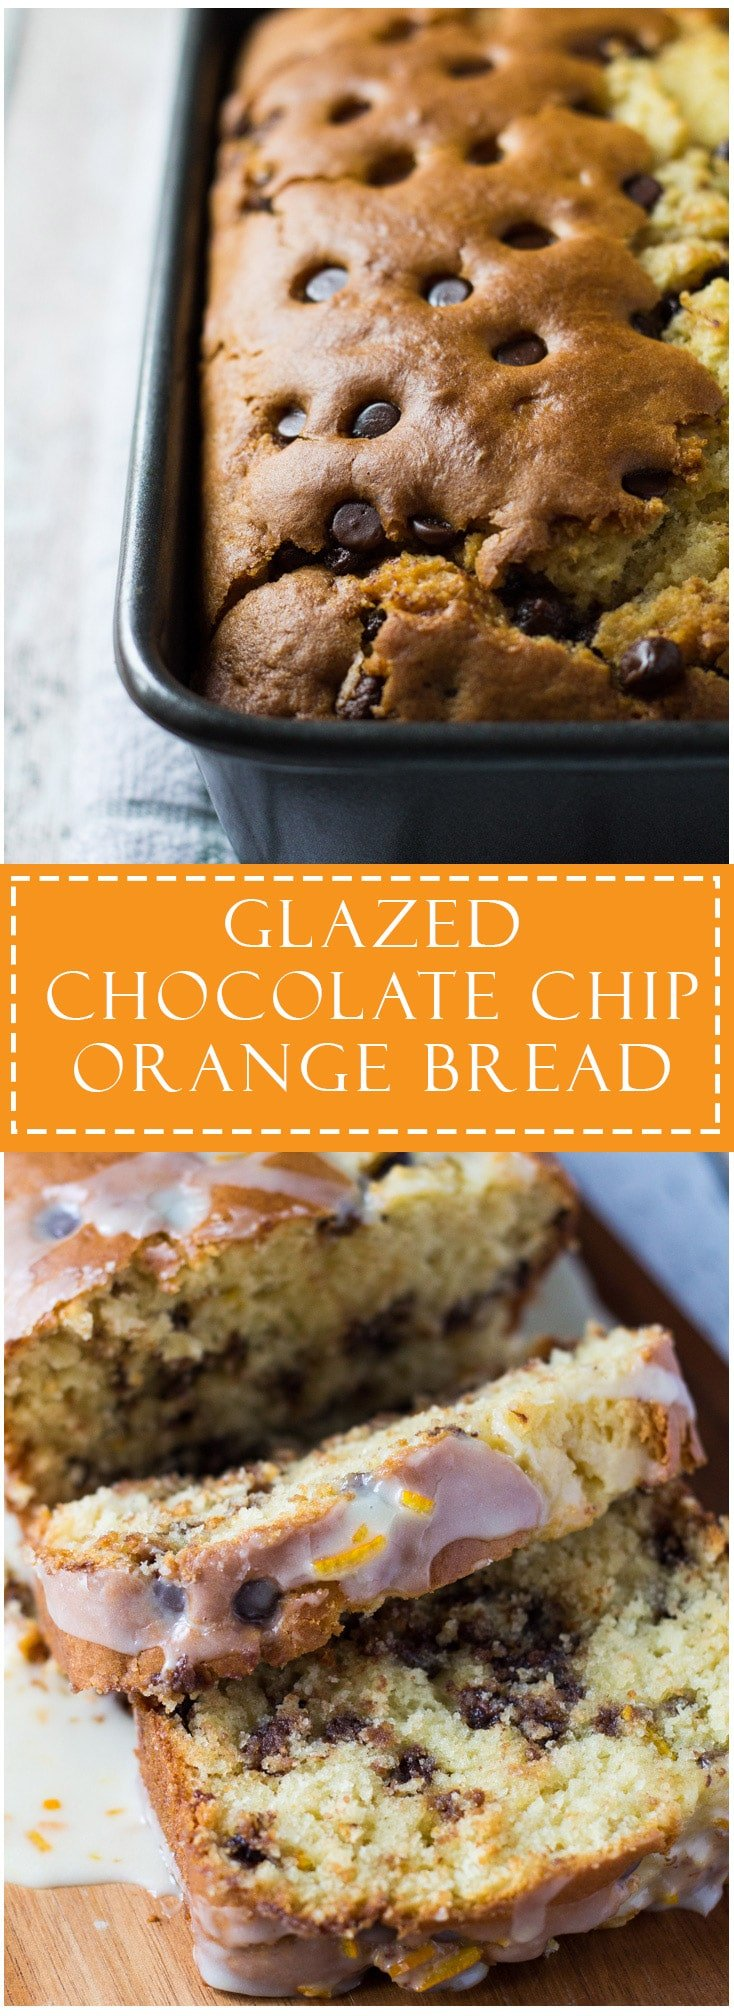 Glazed Chocolate Chip Orange Bread – Sweet, moist and tender orange bread studded with chocolate chips, and drizzled with an orange glaze!